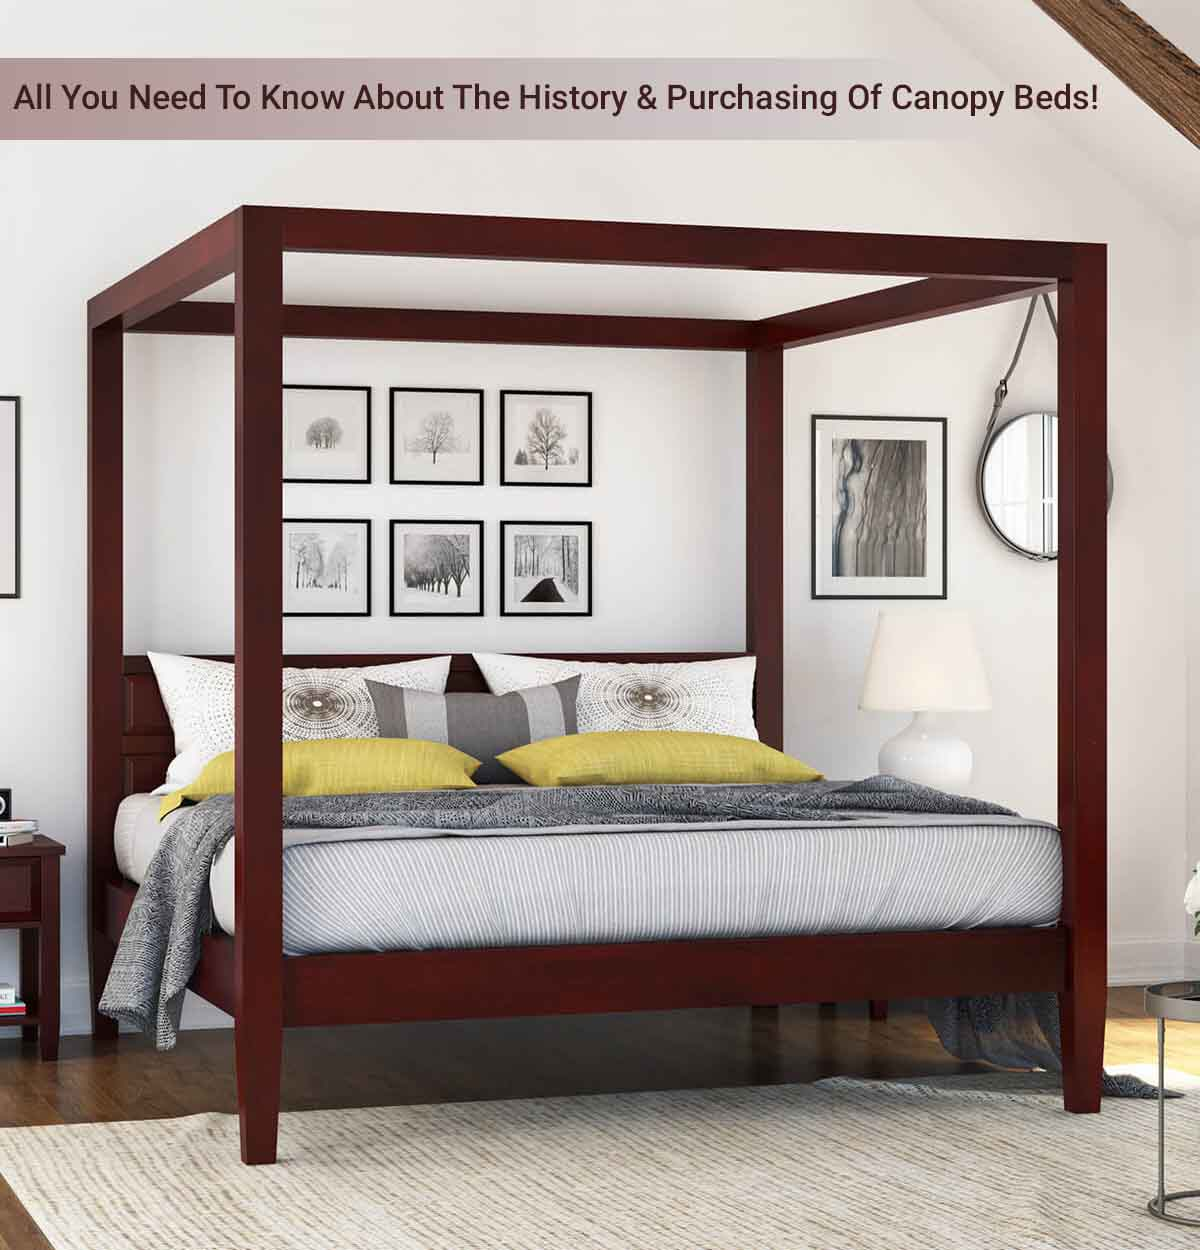 c1eab79bab59 All You Need To Know About The History & Purchasing Of Canopy Beds!